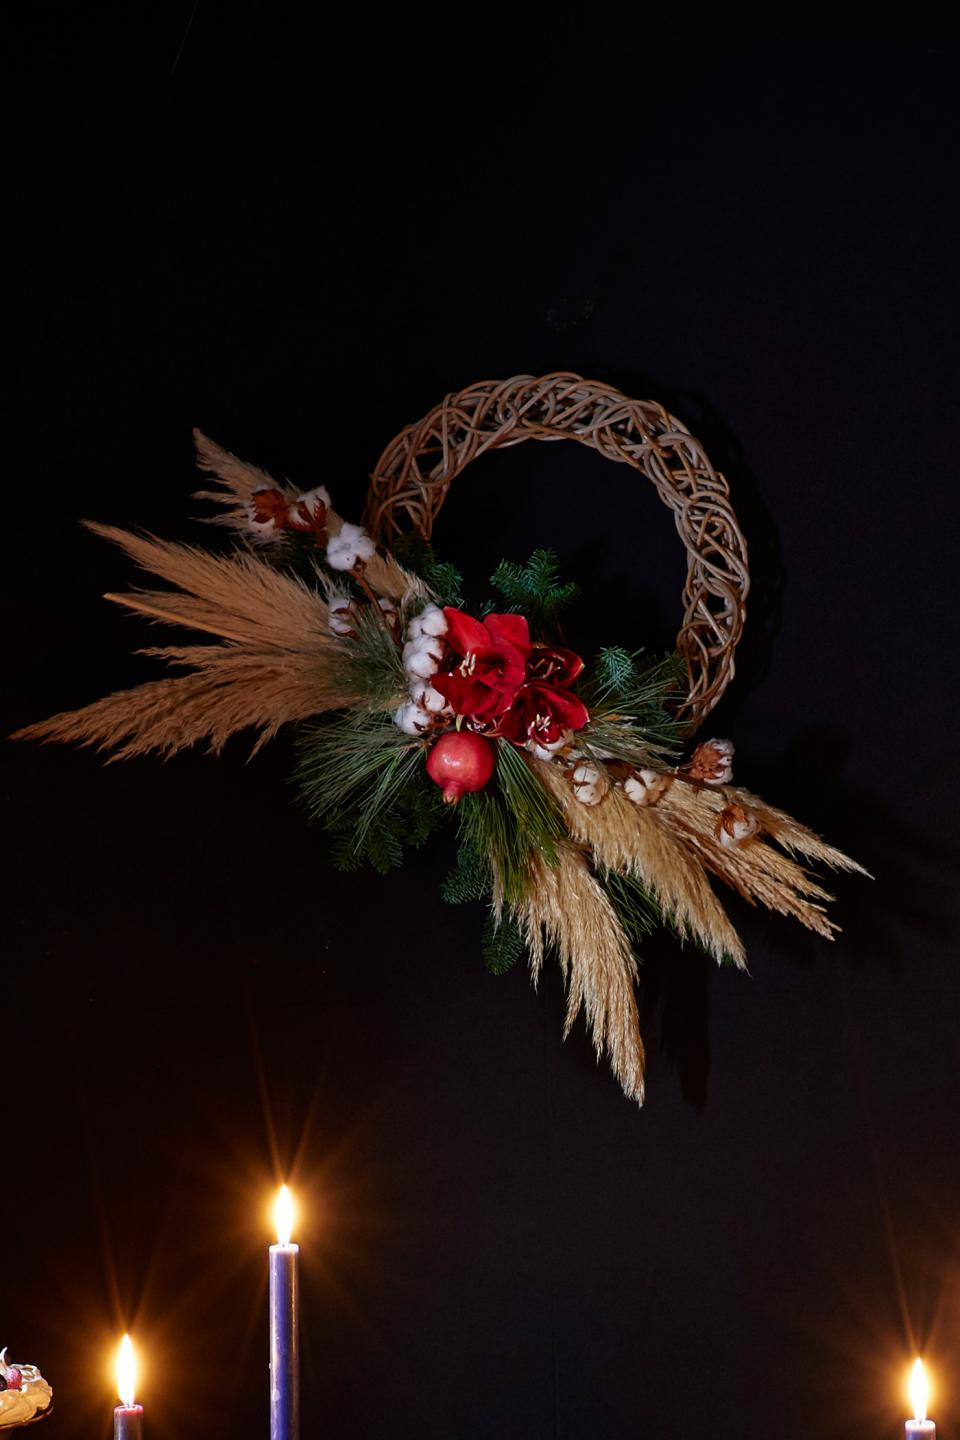 Bohemian Christmas Celebration in Moody Tones- Christmas Wreath